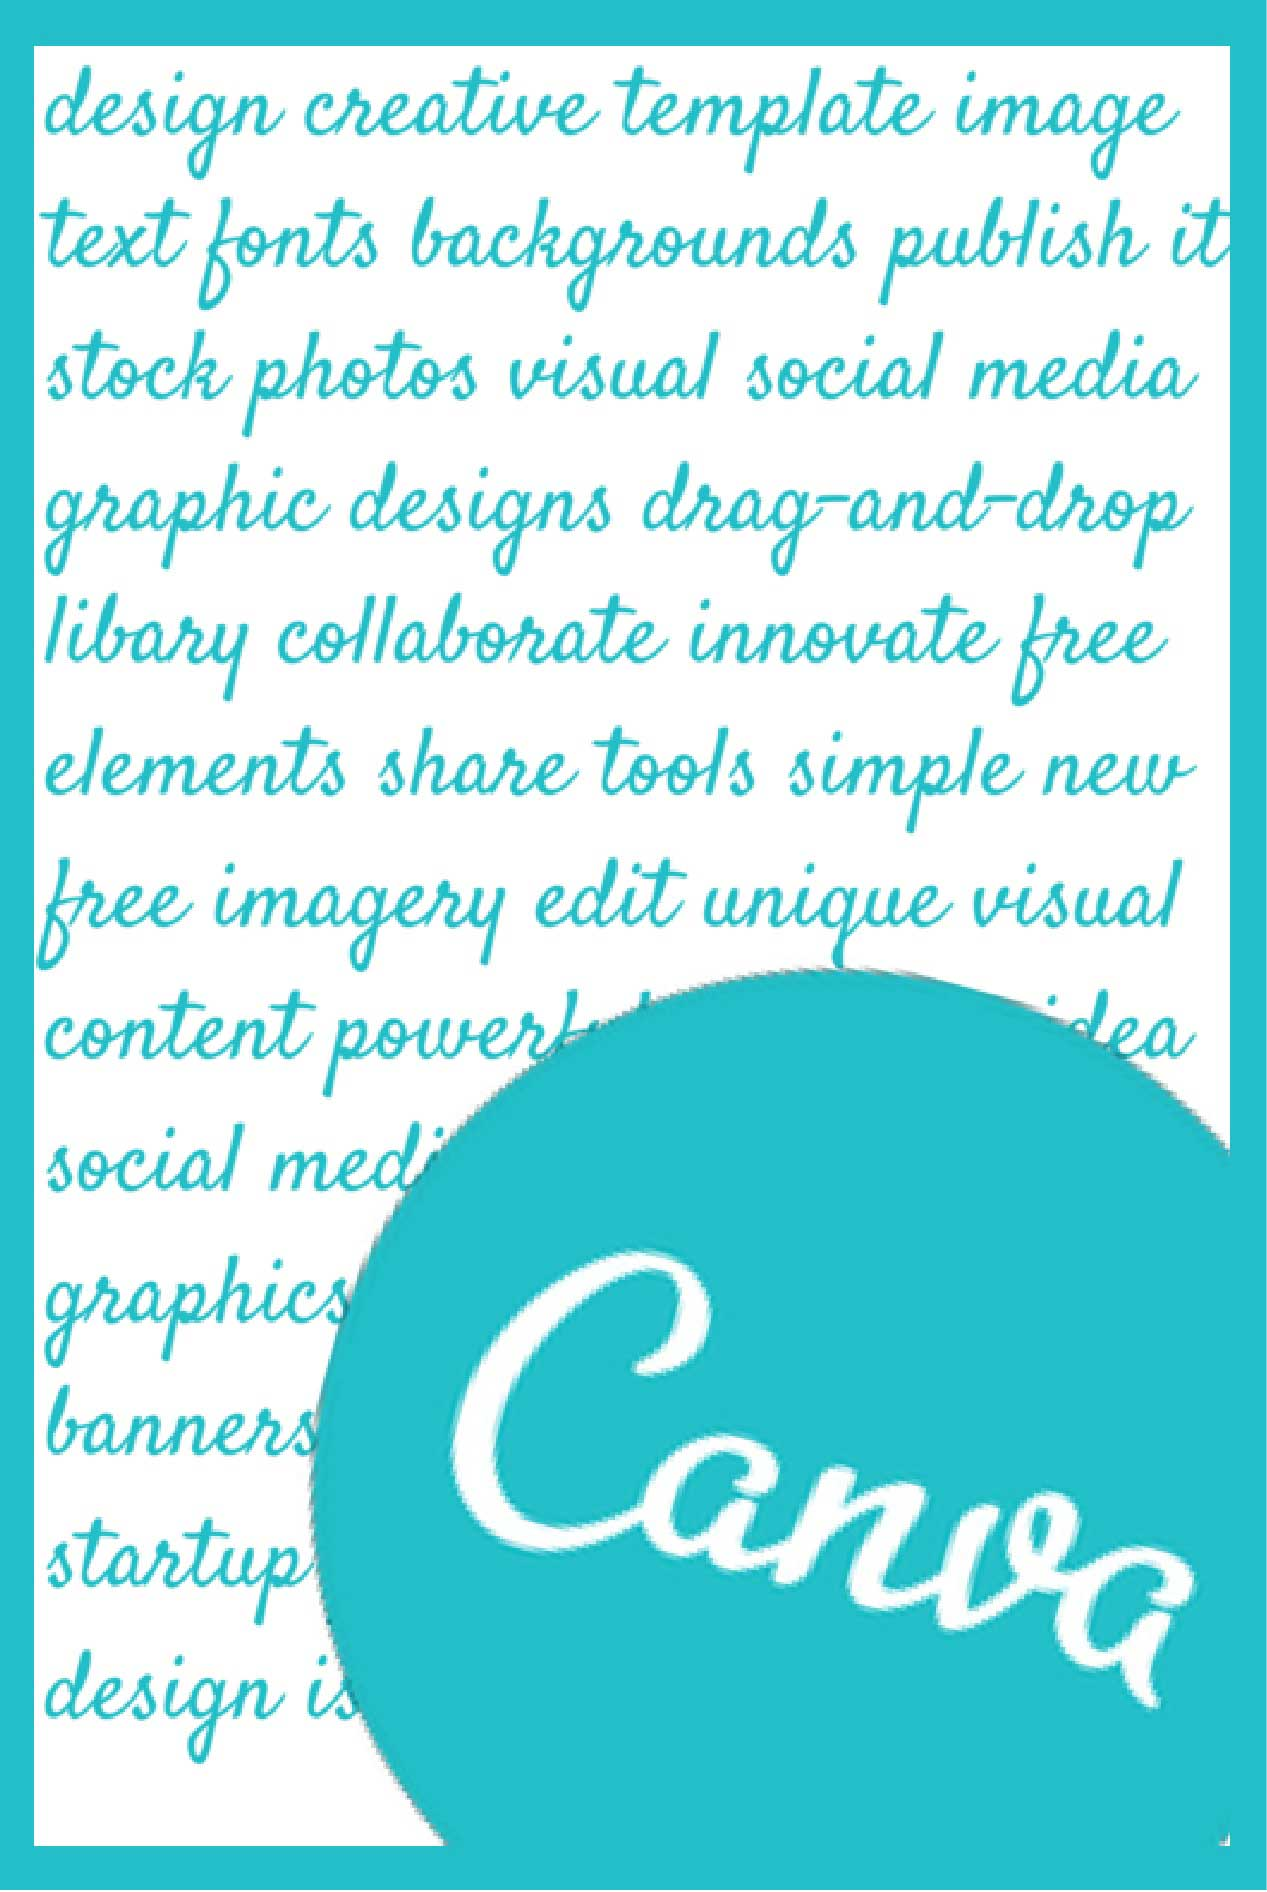 Canva Makes Image Creation Easy - New Design Tool for Visual Content www.sociallysorted.com.au